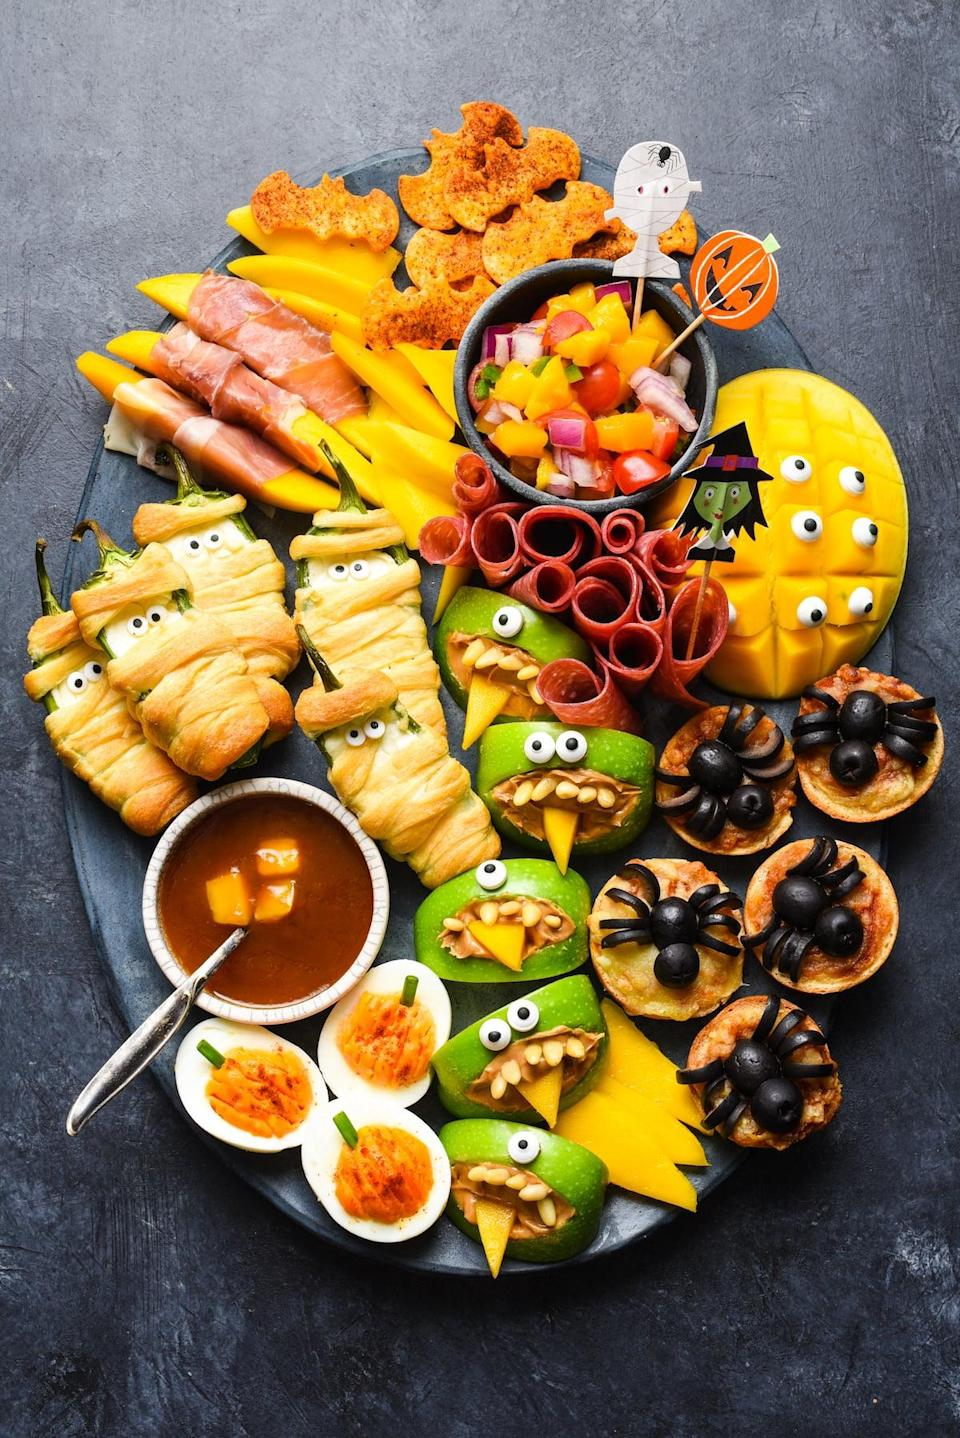 "<p>If you're in the mood for a casual and cool dinner, this Halloween-themed plate is for you. It features jalapeño popper mummies with mango sweet-and-sour sauce, spider pizzas, pumpkin deviled eggs, and more. What else could you want?!</p> <p><strong>Get the recipe:</strong> <a href=""https://foxeslovelemons.com/halloween-snack-dinner/"" class=""link rapid-noclick-resp"" rel=""nofollow noopener"" target=""_blank"" data-ylk=""slk:mummy, spider, and bat plate"">mummy, spider, and bat plate</a></p>"